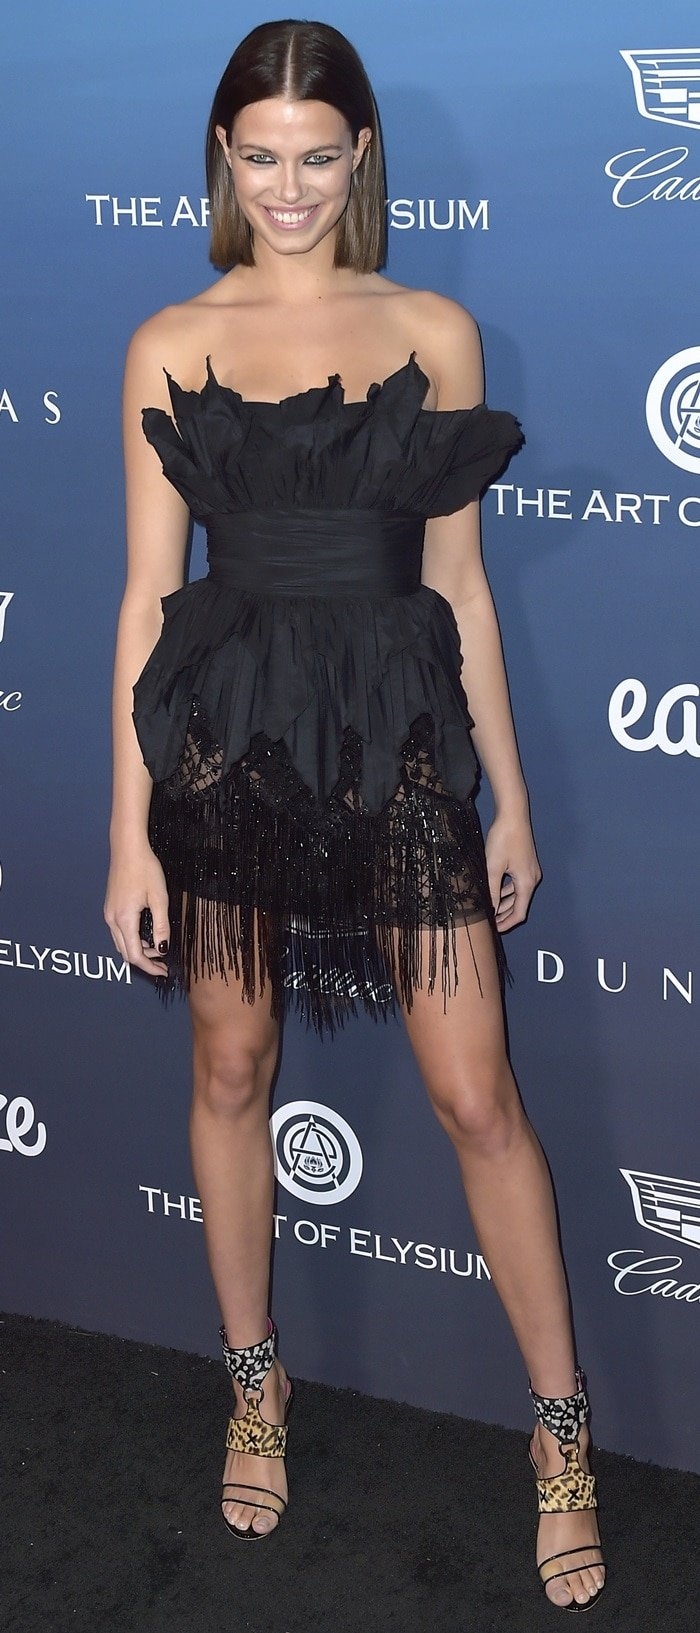 Hailey Clauson's long legs at the Art of Elysium's 12th Annual Celebration Heaven